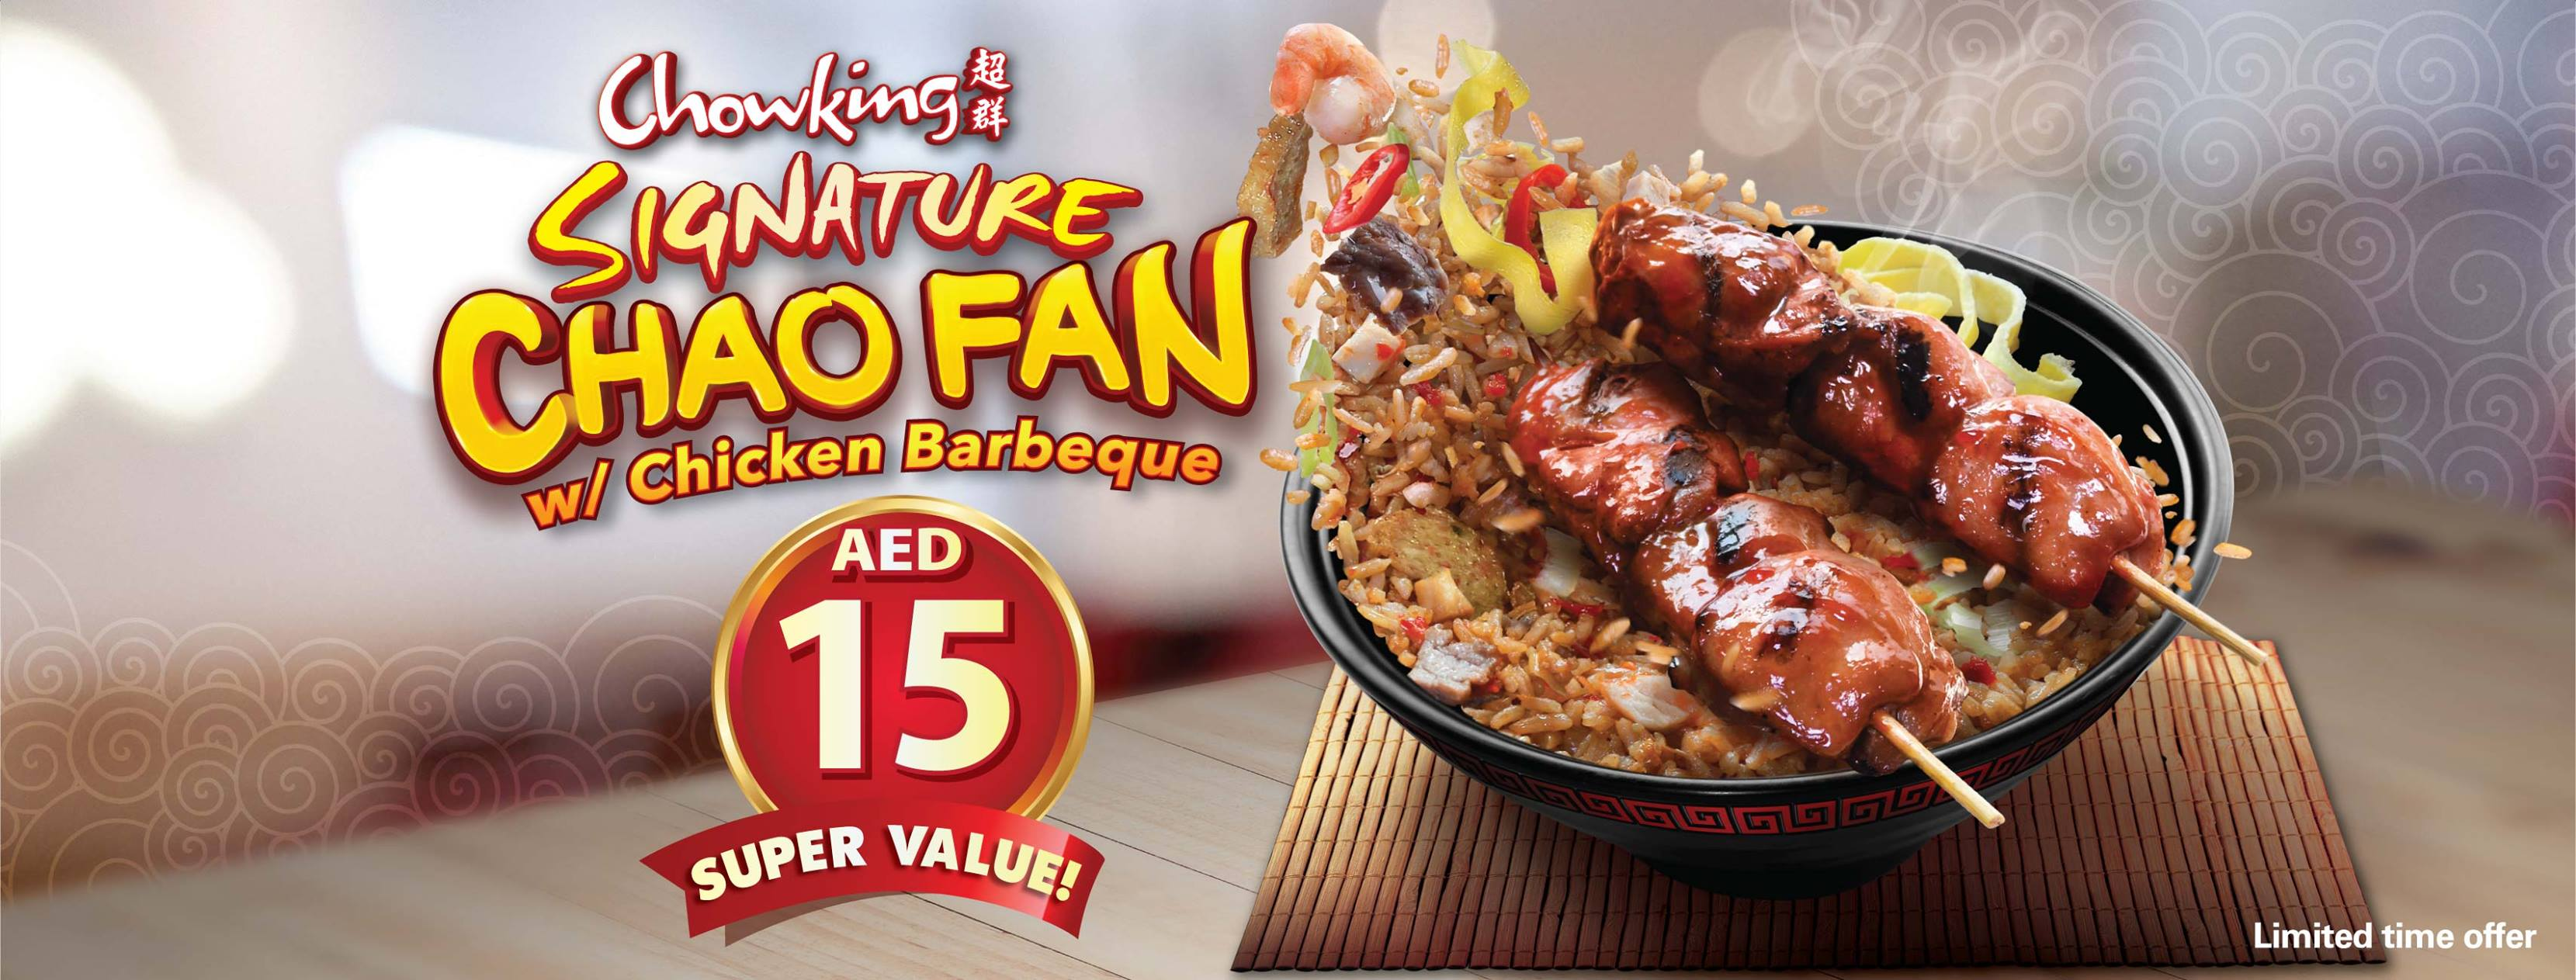 Chowking Introduces Delicious Affordable Signature Chao Fan Chicken Barbecue Combo Deal The